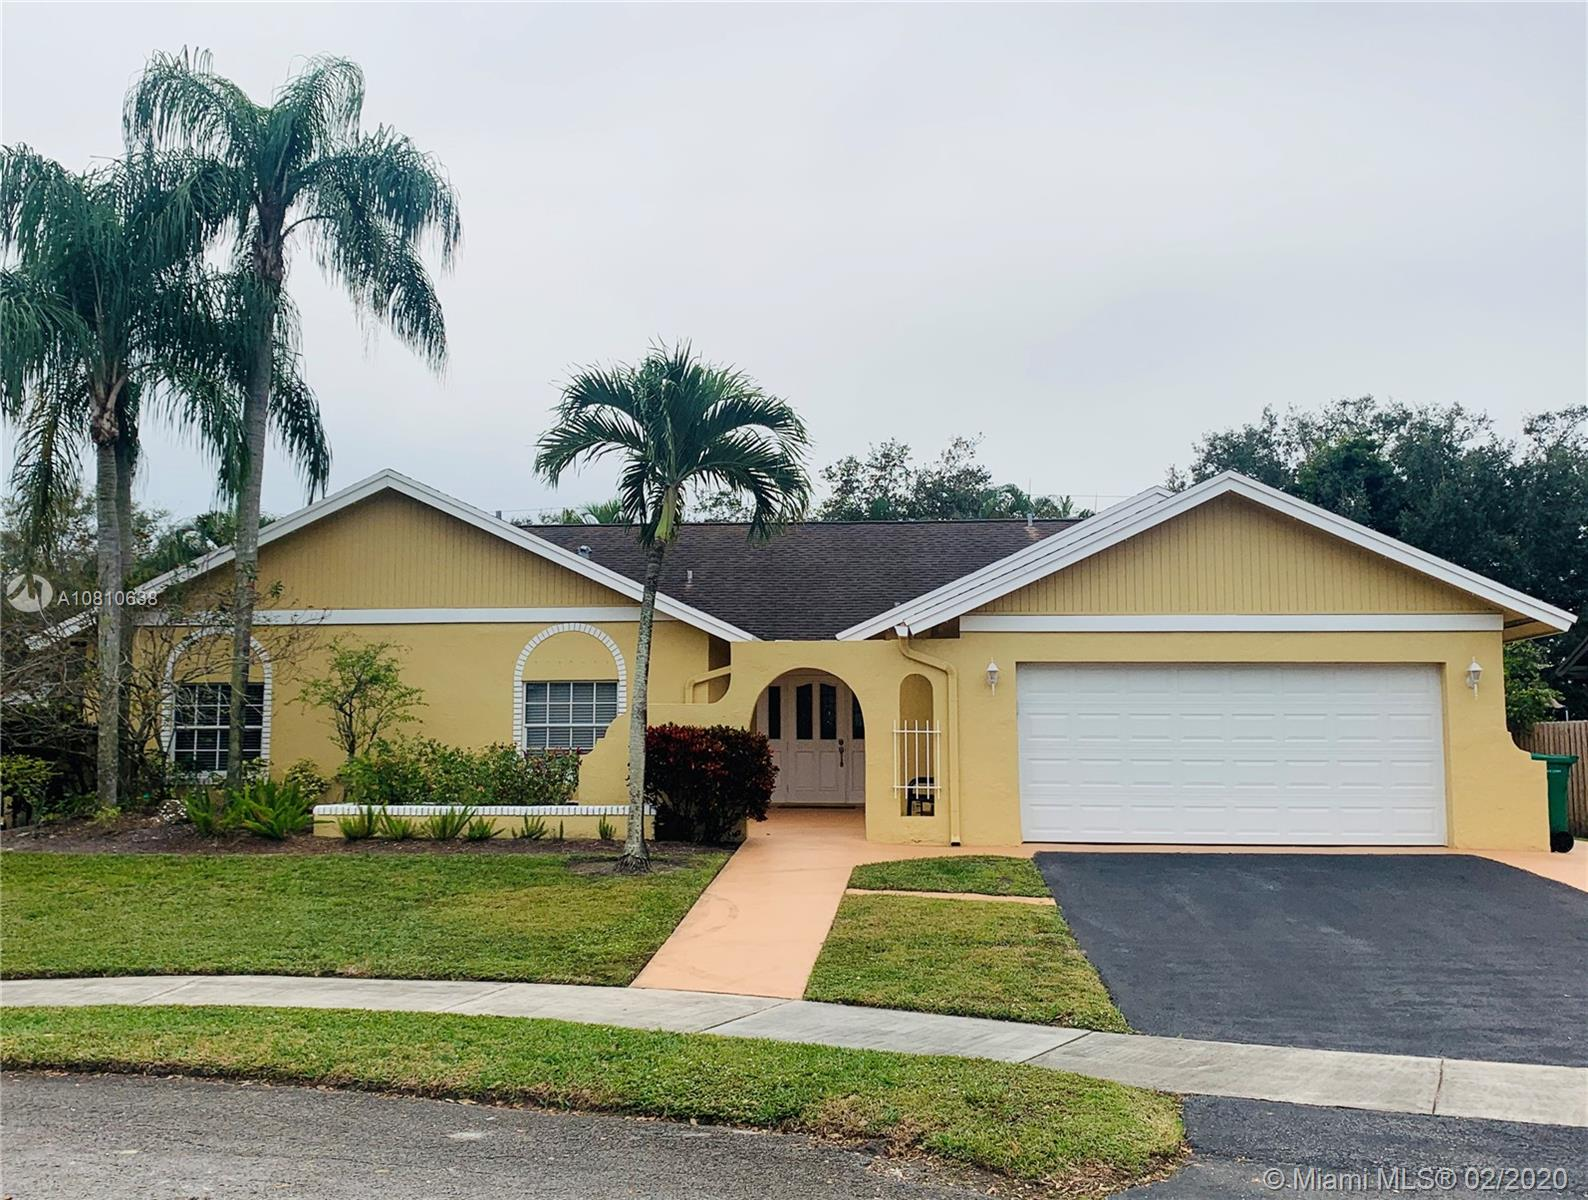 BEAUTIFUL SINGLE FAMILY HOME LOCATED IN THE DESIRABLE FLAMINGO GARDENS IN THE HEART OF COOPER CITY ON A CUL-DE- SAC WITH POOL AND JACUZZI, 4 BEDROOMS 2 FULL BATHROOMS, 2 CAR GARAGE, NICE KITCHEN, WOOD CABINETS, GRANITE COUNTER TOPS, LAMINATED FLOORS IN KITCHEN, DINNING ROOM AND LIVING ROOM, CARPET IN THE BEDROOMS, UPGRADED MASTER BATHROOM WITH JACUZZI, UPGRADED SECOND BATHROOM, WOOD FIRE PLACE, BRAND NEW A/C UNIT, 2 IMPACT WINDOWS AND HURRICANE SHUTTERS, NEW HURRICANE APPROVED GARAGE DOOR, NO HOA FEES, A+SCHOOL DISTRICT, MINUTES AWAY FROM I-75, SHOPPING CENTERS, RESTAURANTS, PARKS AND MEMORIAL WEST HOSPITAL.